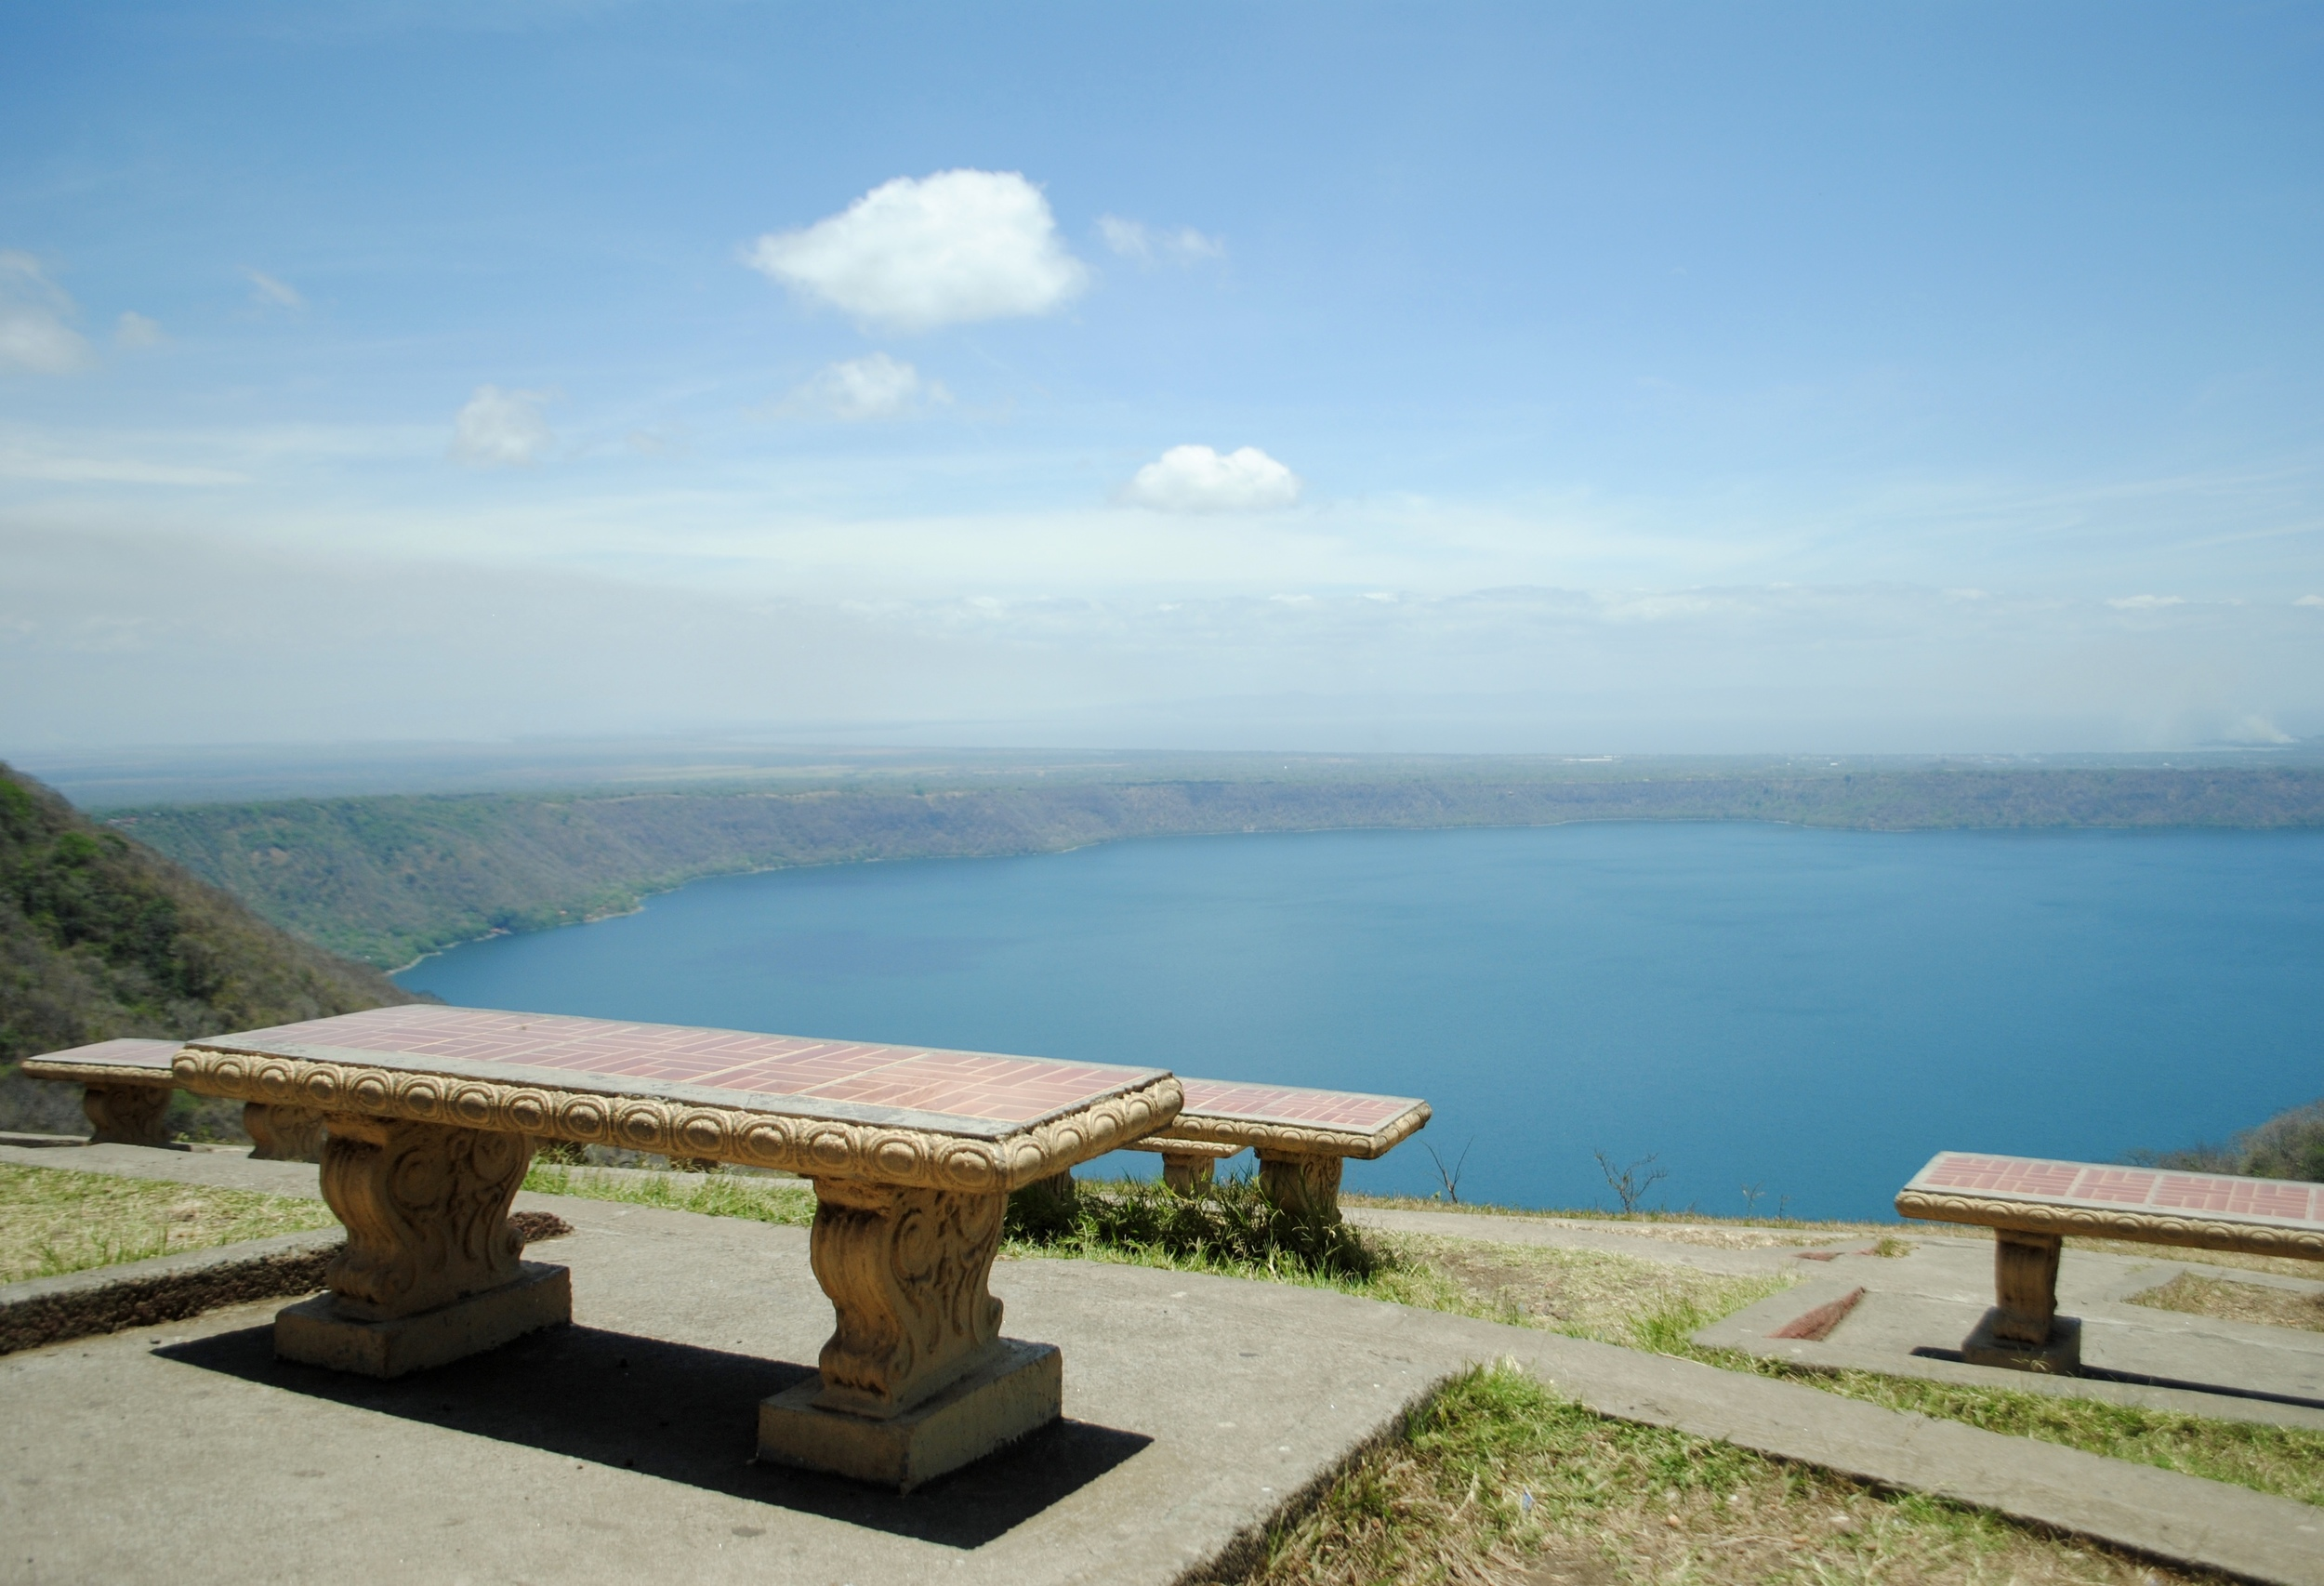 Views of Laguna de Apoyo, take a seat!